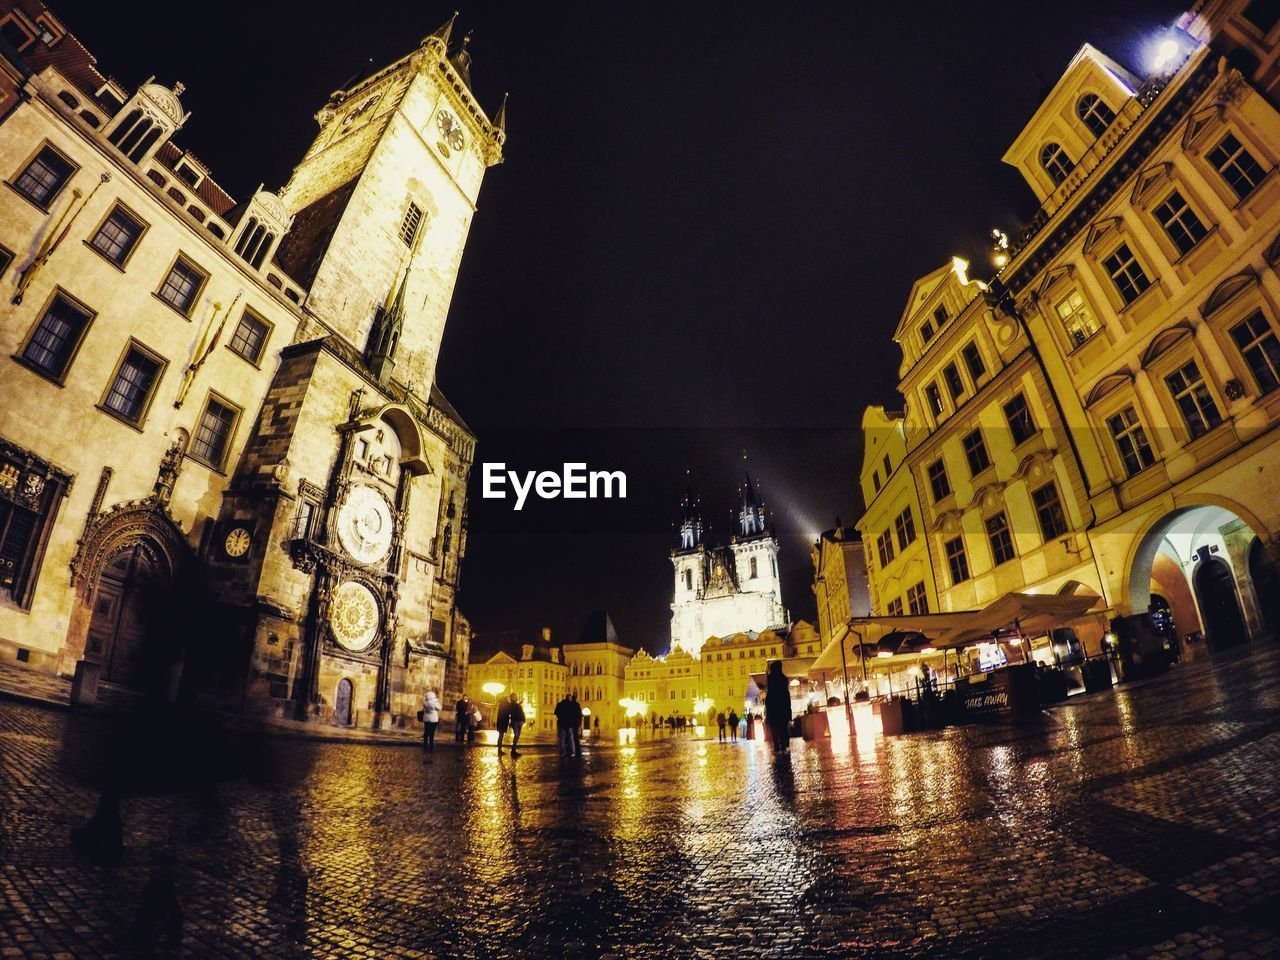 building exterior, architecture, built structure, night, large group of people, illuminated, place of worship, religion, town square, spirituality, history, men, real people, wet, travel destinations, outdoors, clock tower, city, water, sky, astronomical clock, people